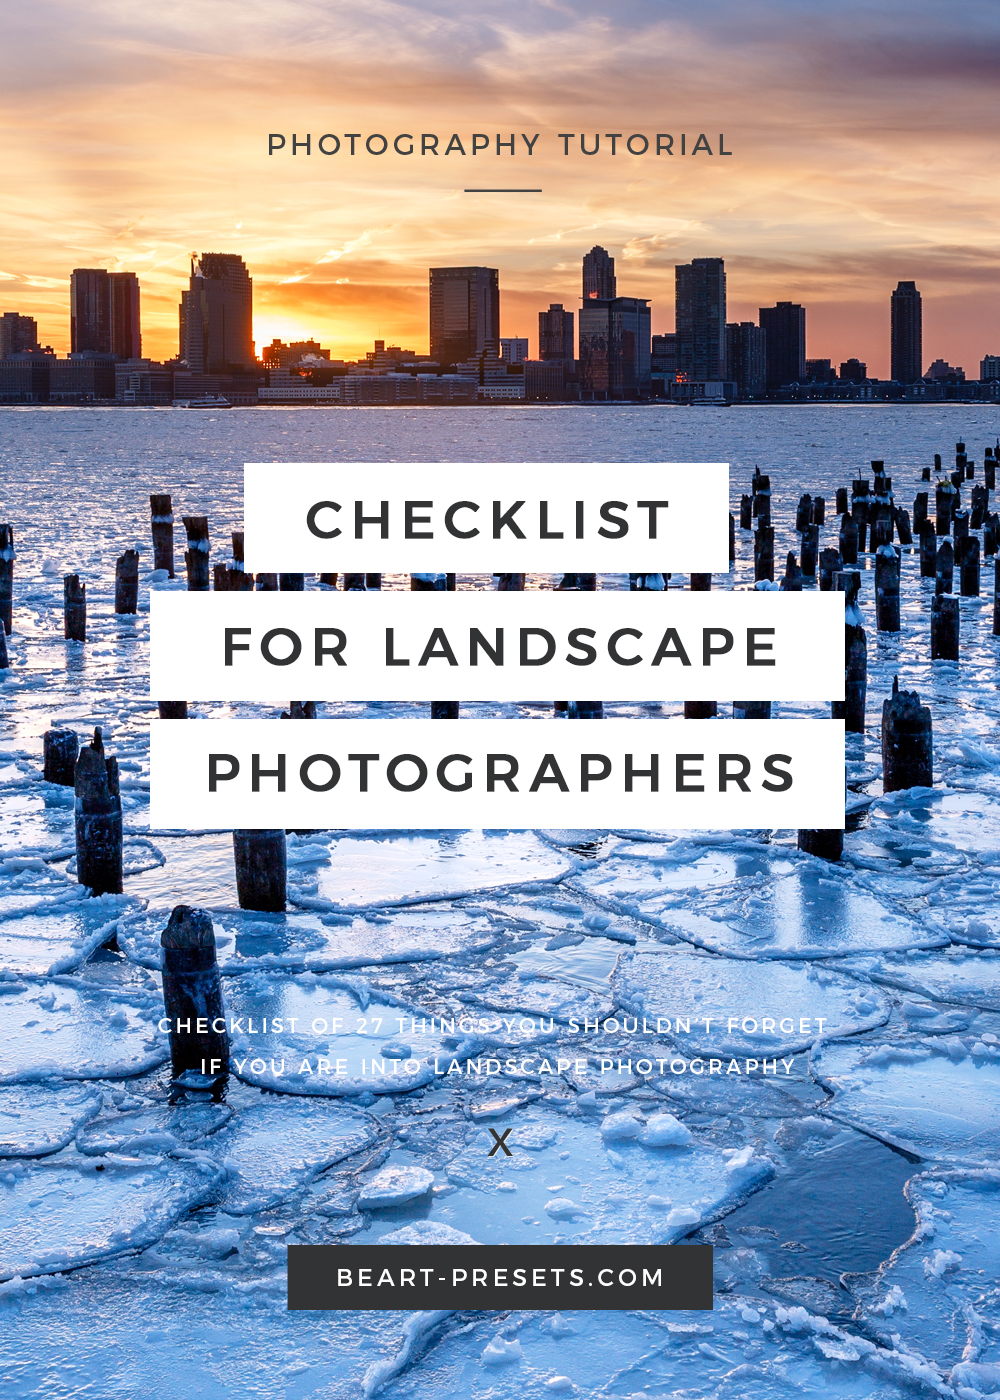 27 THINGS YOU SHOULDN'T FORGET IF YOU ARE INTO LANDSCAPE PHOTOGRAPHY